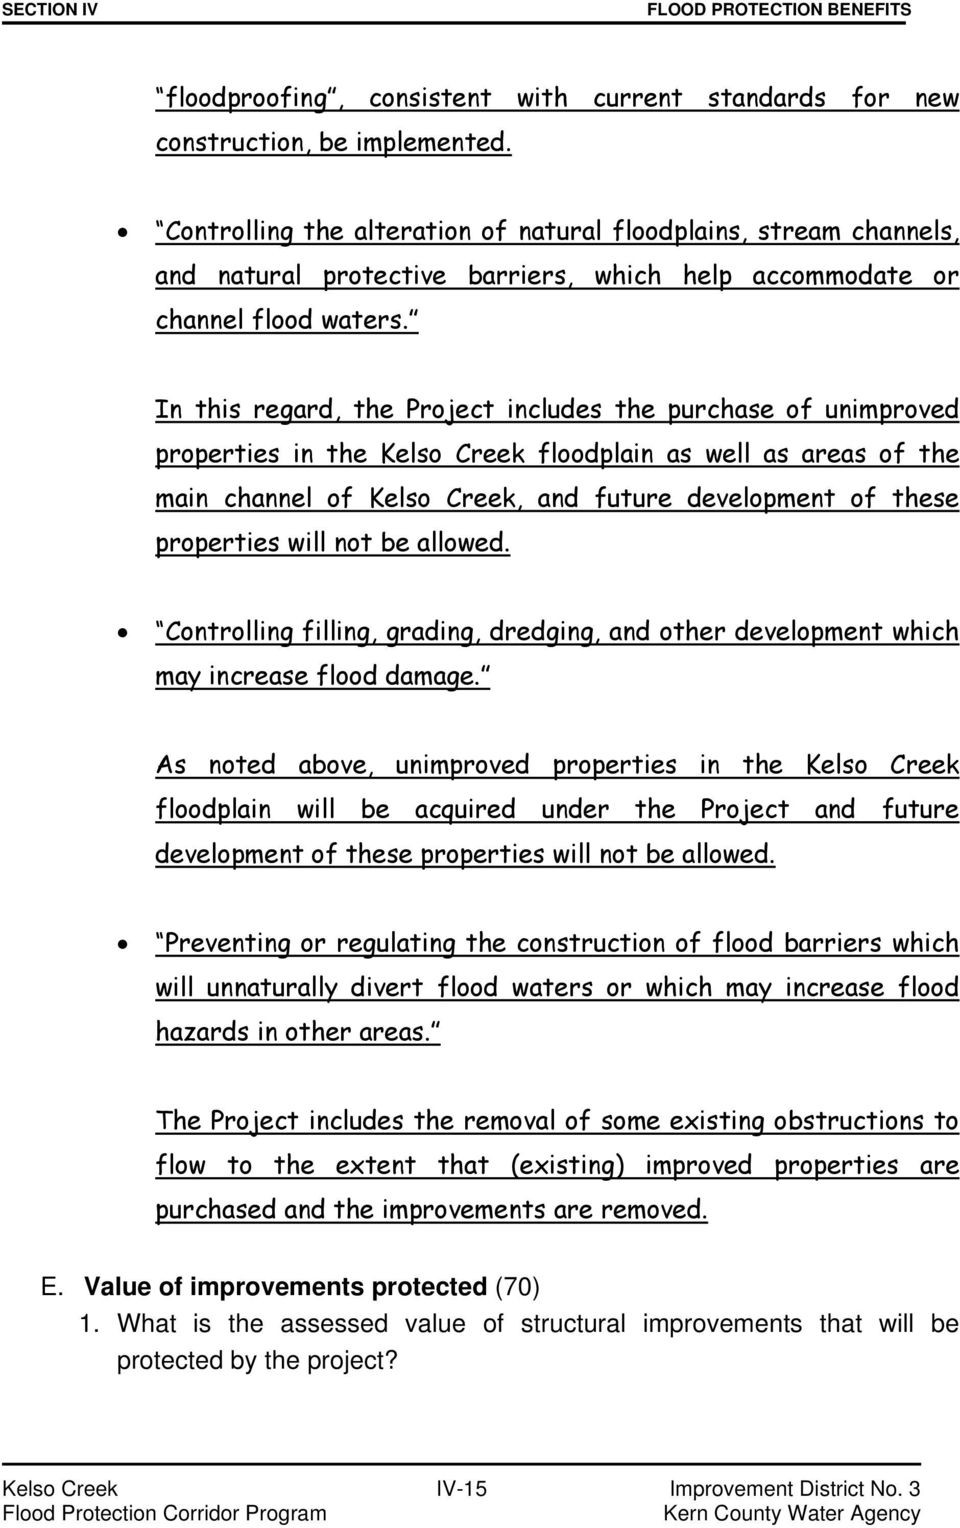 In this regard, the Project includes the purchase of unimproved properties in the Kelso Creek floodplain as well as areas of the main channel of Kelso Creek, and future development of these